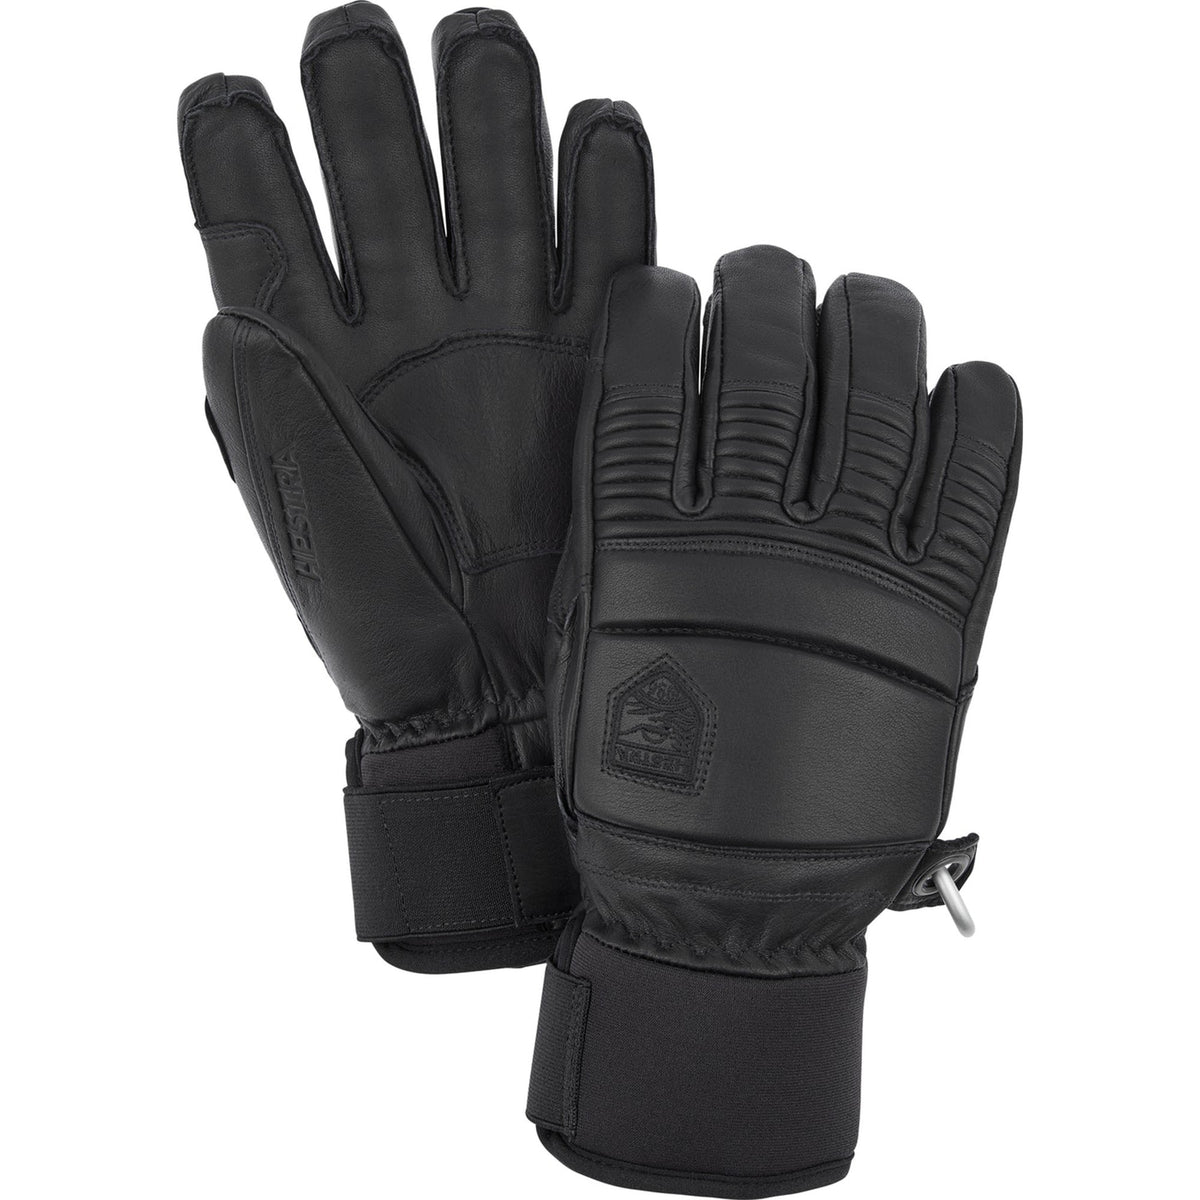 Hestra Leather Fall Line Unisex Ski and Snowboard Glove